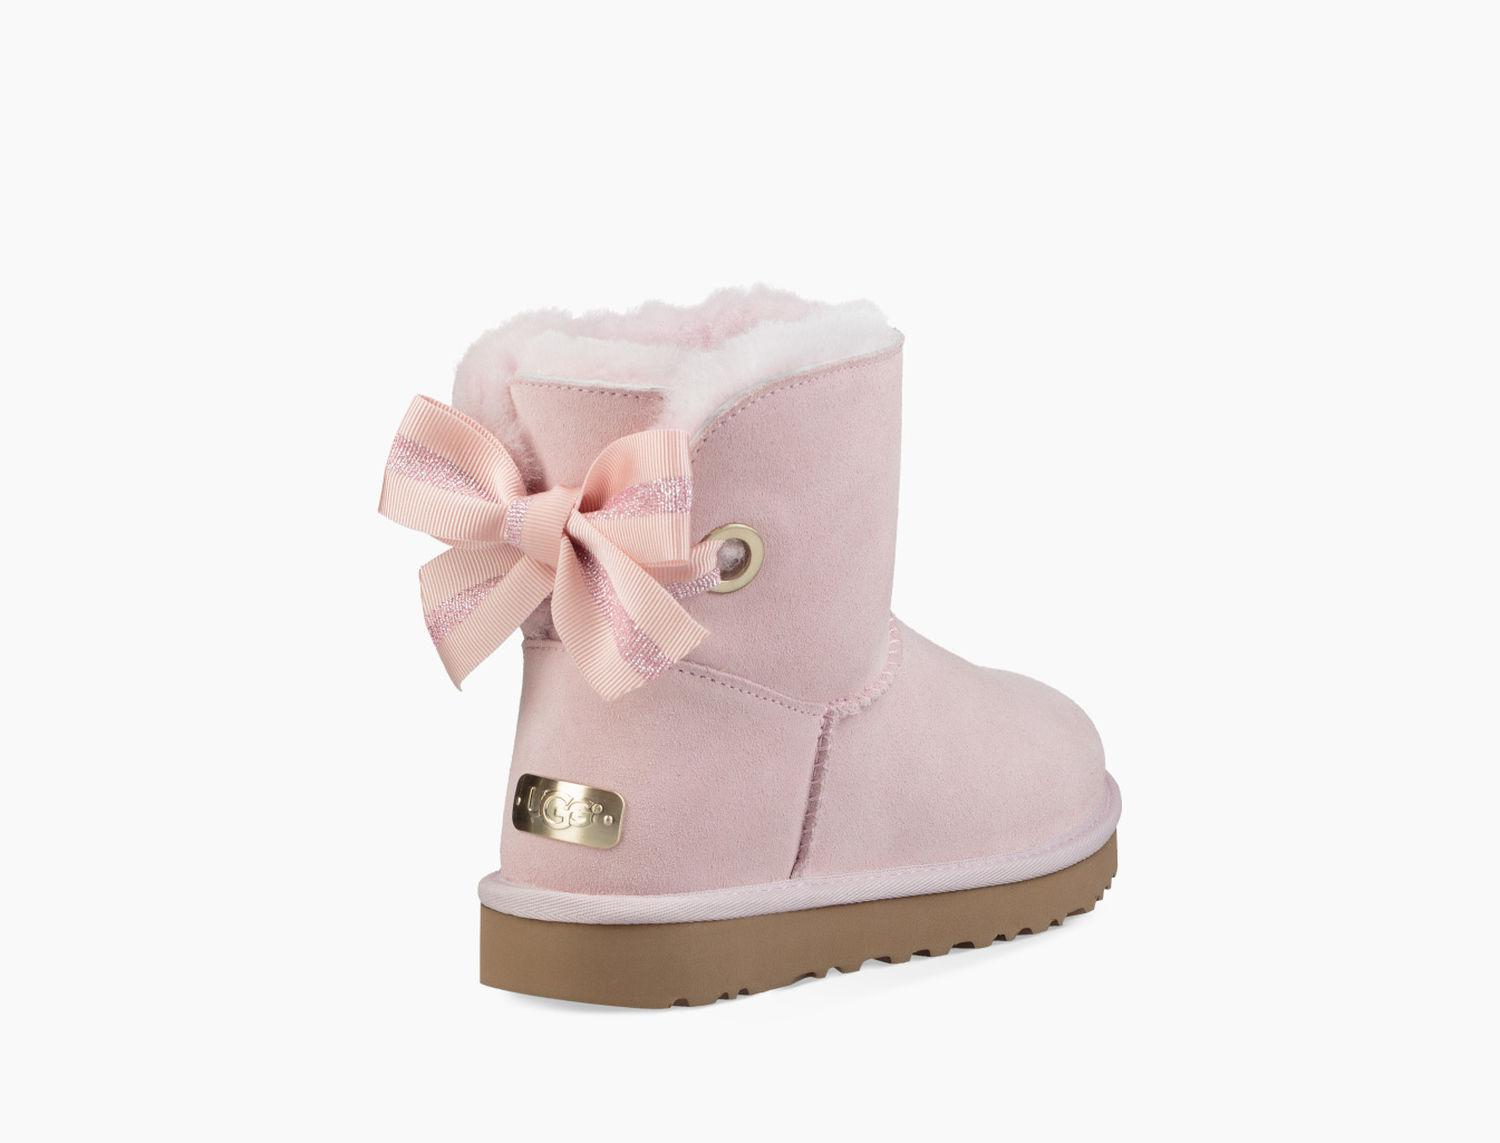 Ugg - Pink Women's Customizable Bailey Bow Mini Boot - Lyst. View fullscreen